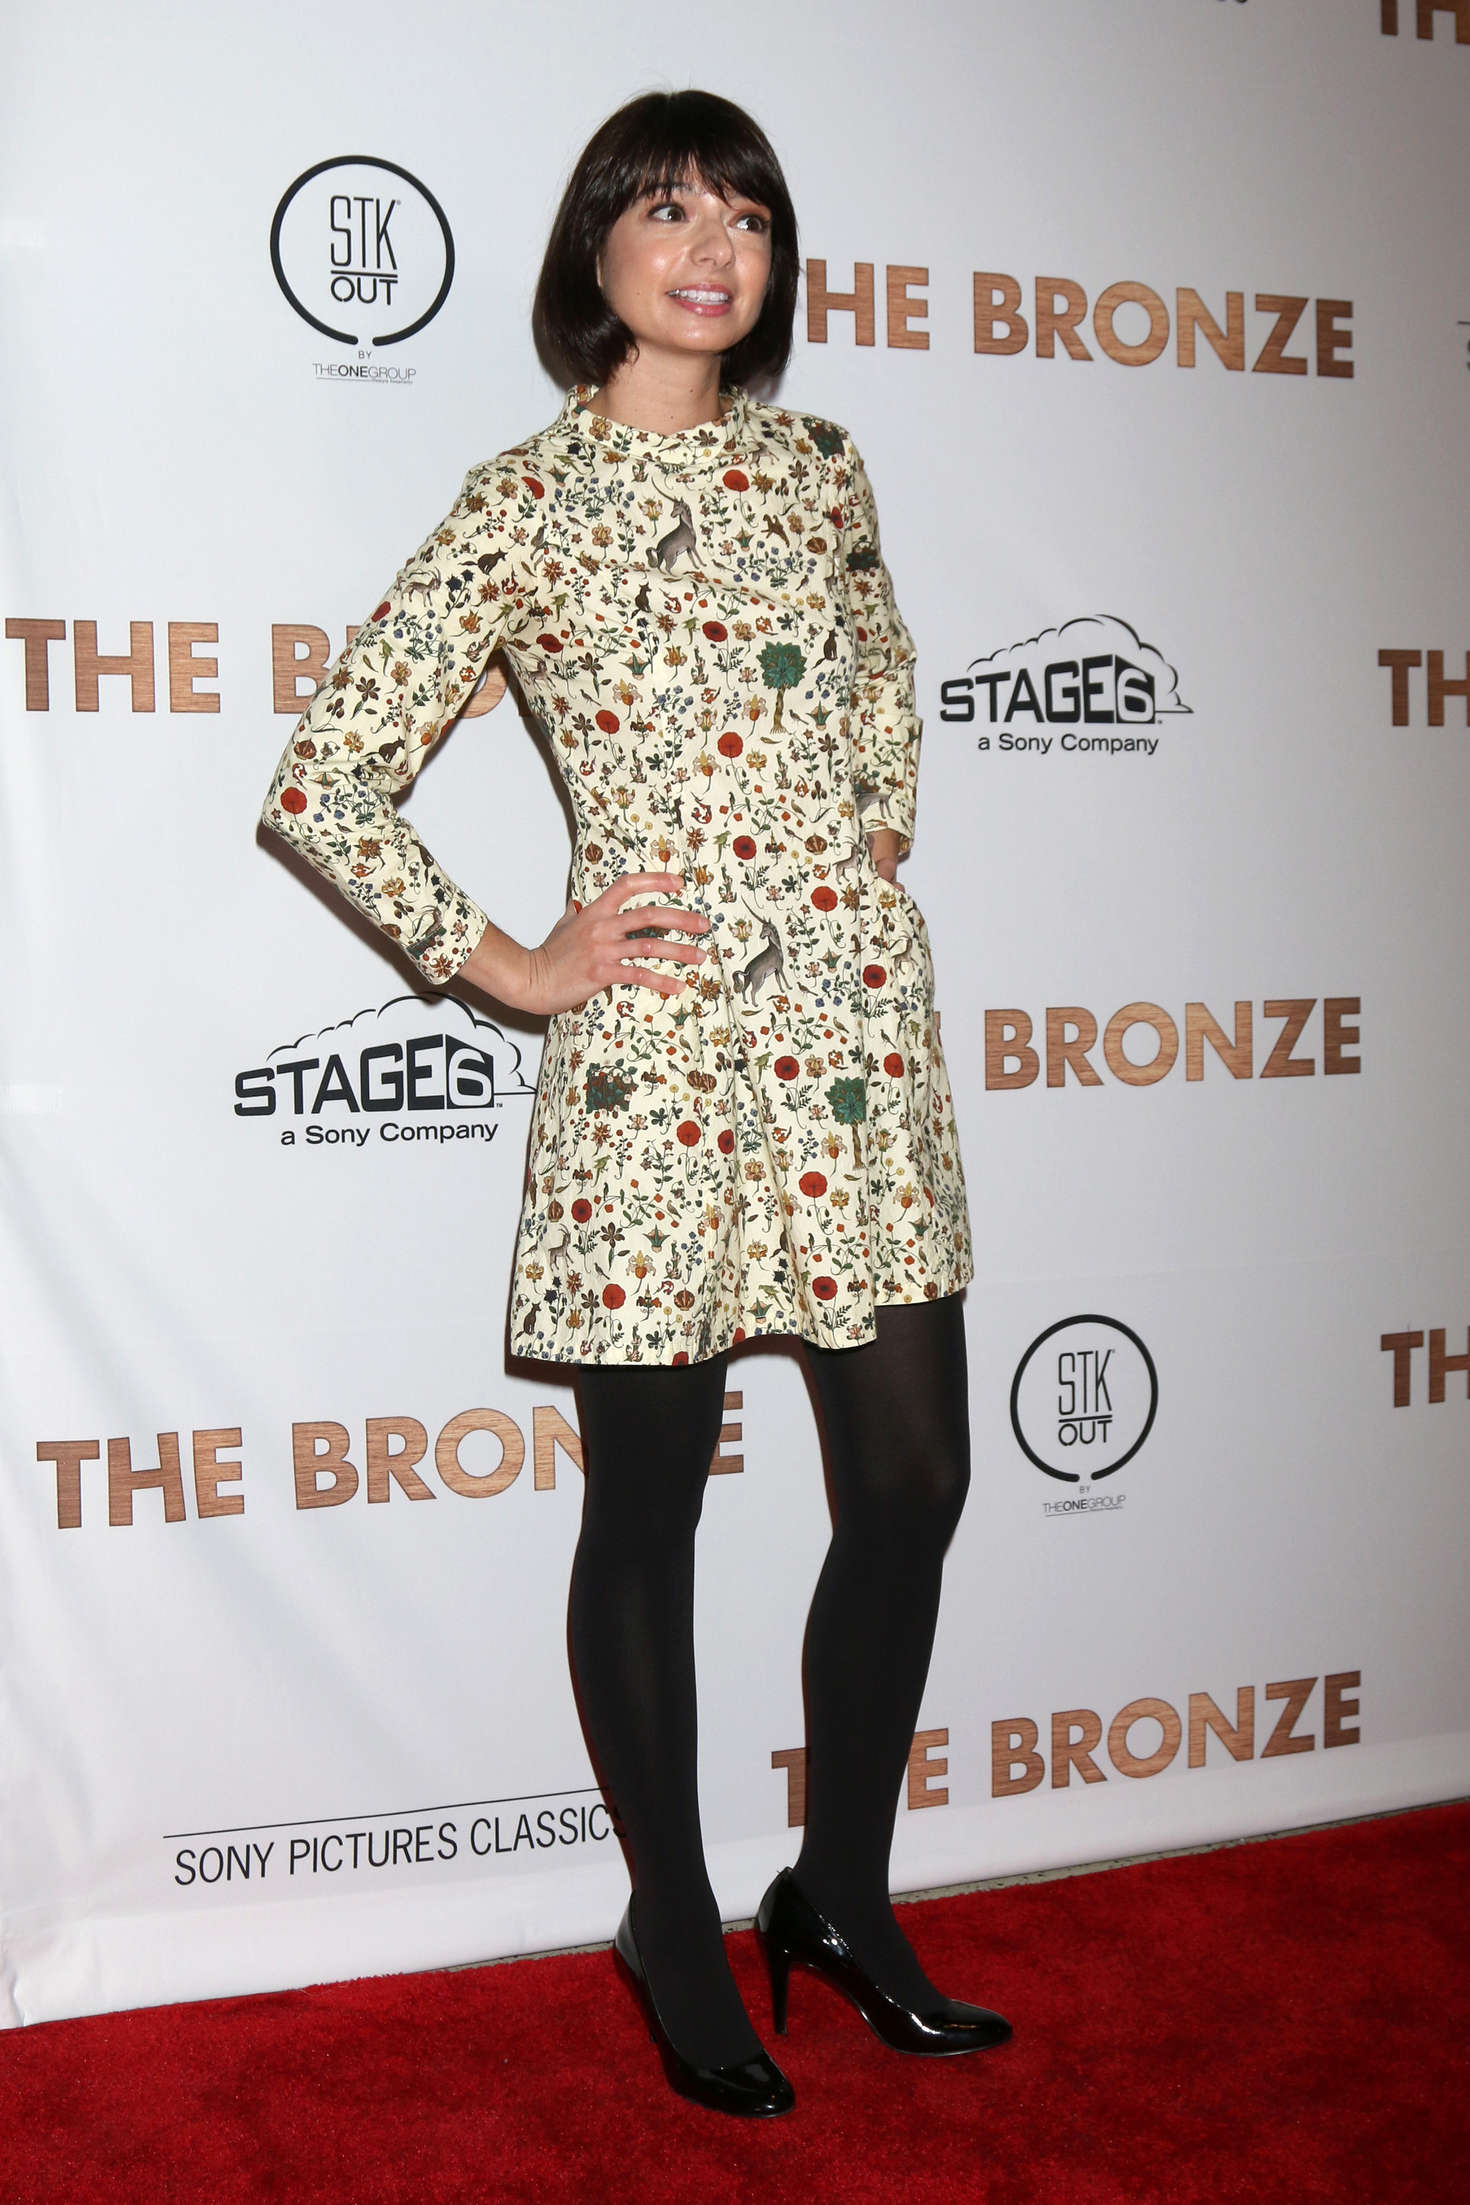 Kate Micucci The Bronze Premiere in Los Angeles